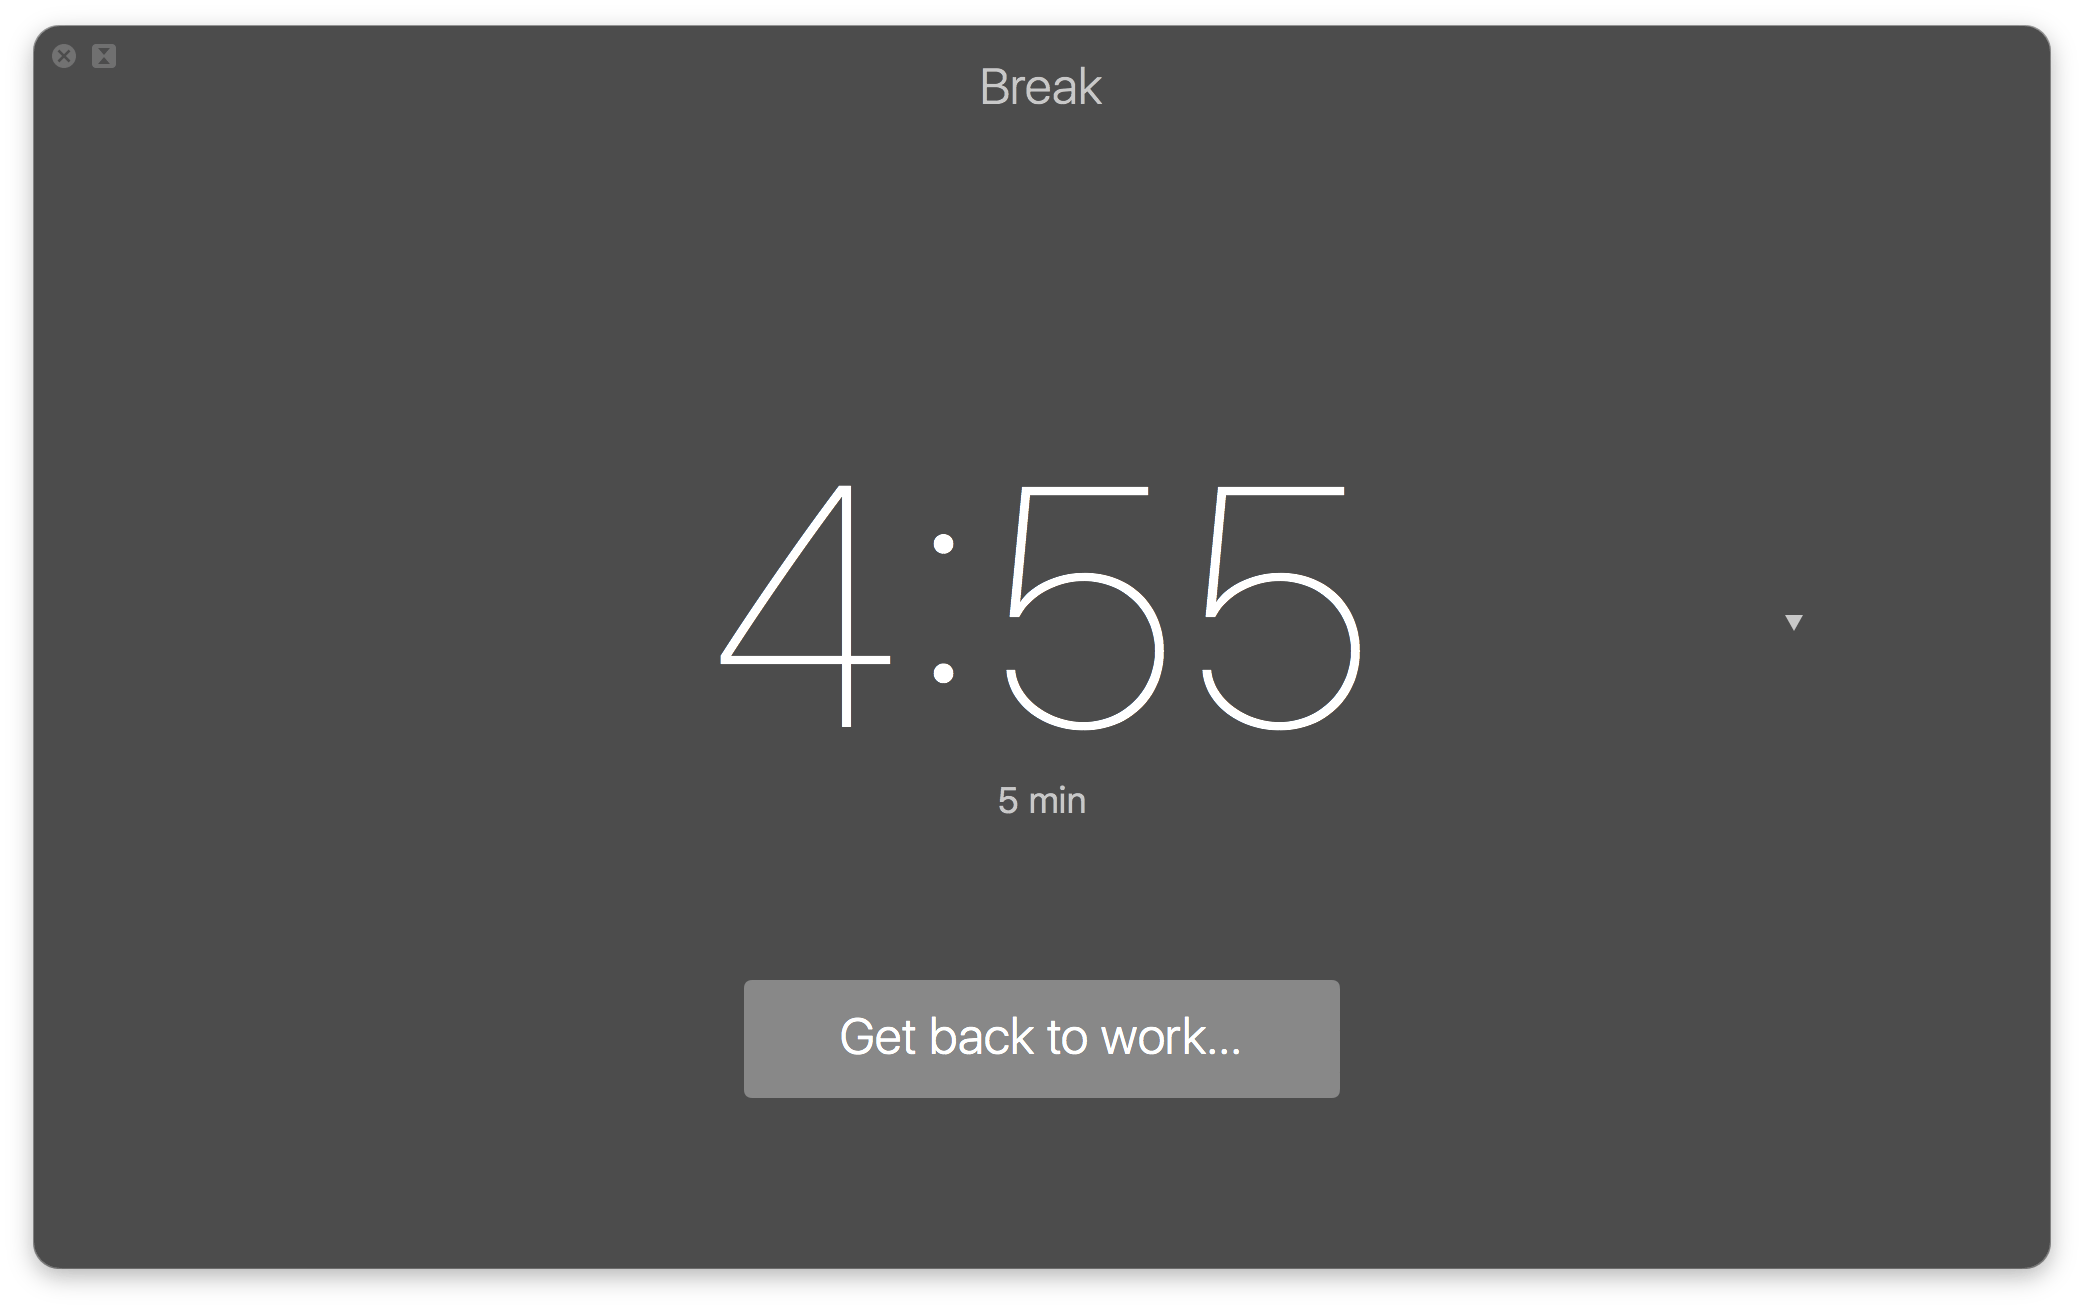 You can shorten your break by clicking 'Get back to work.'